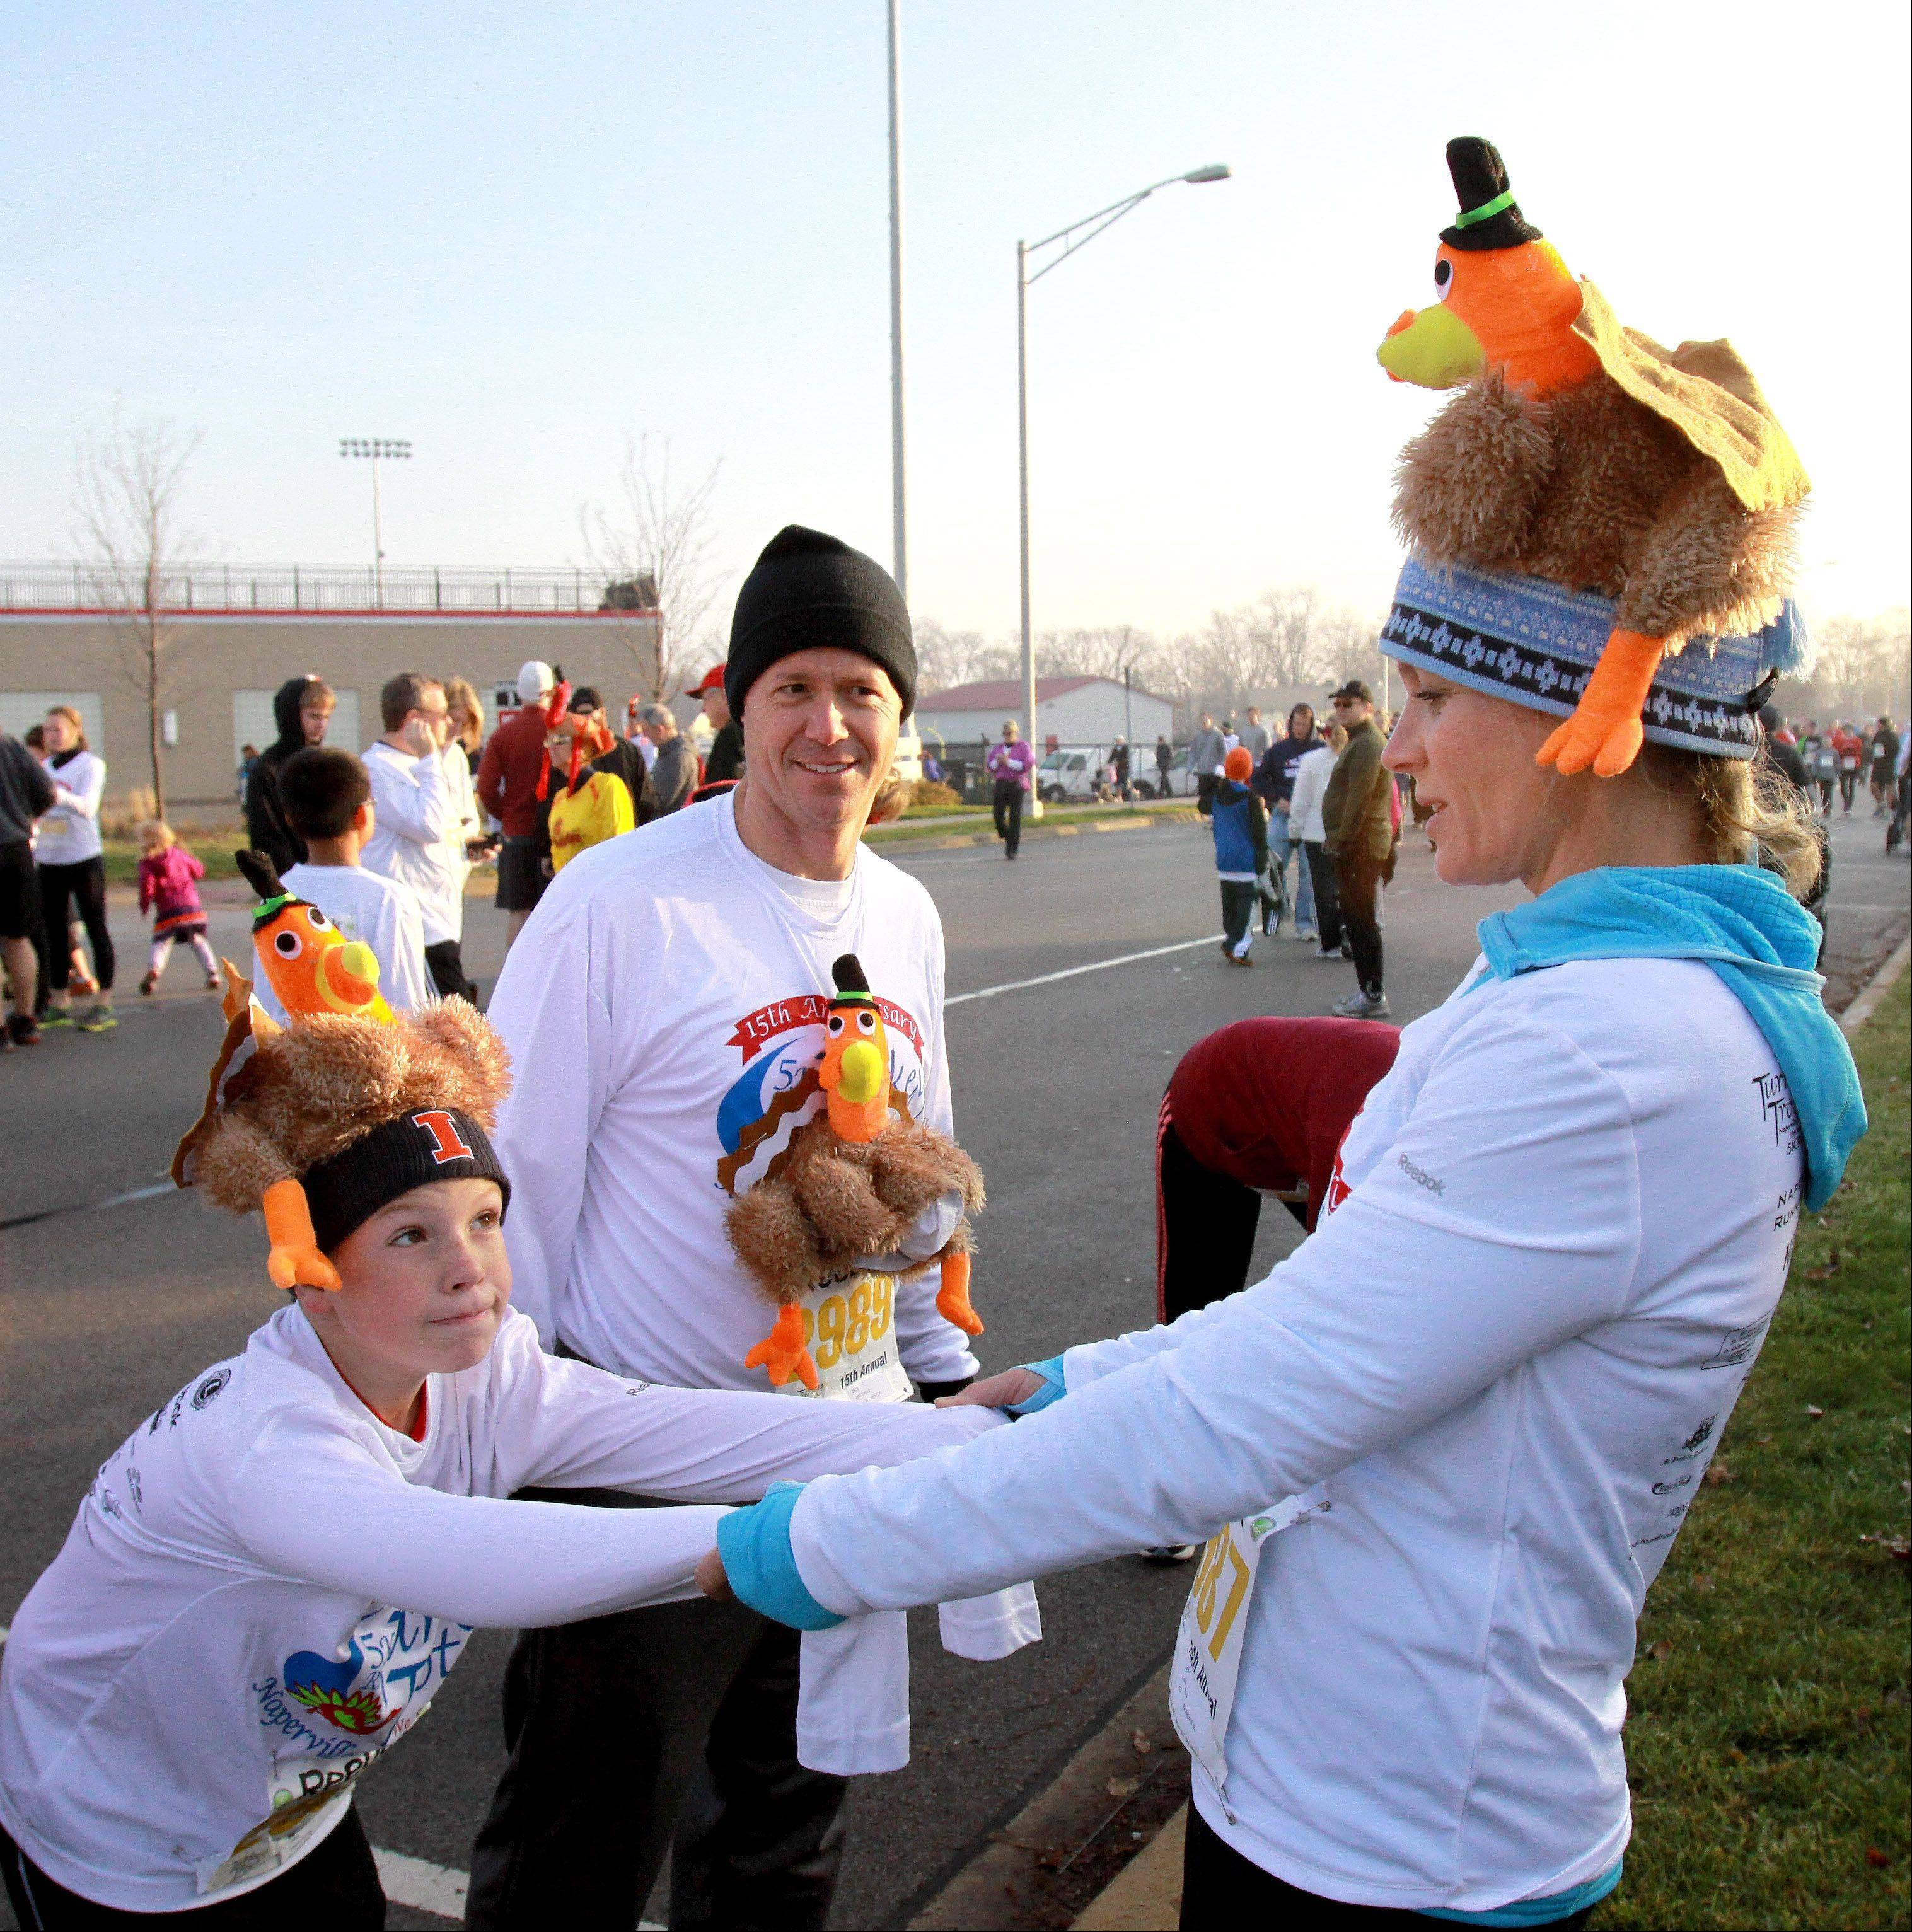 Lisa and John Endrud of Naperville and their son William, 9, prepare for the 15th annual Turkey Trot in Naperville.